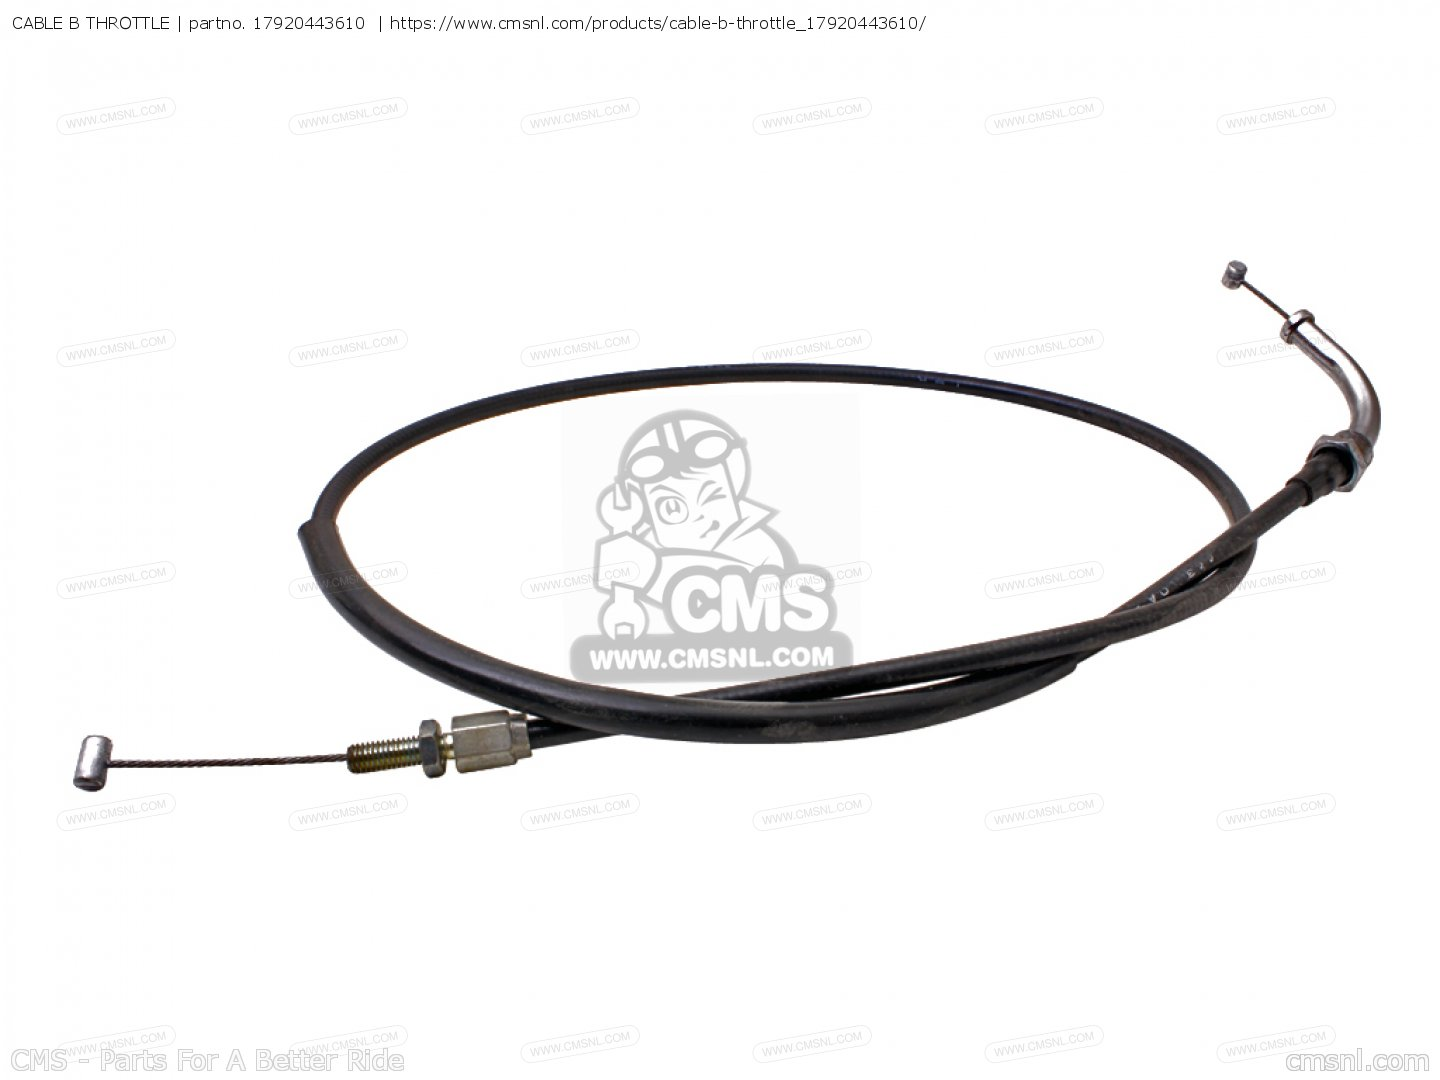 CABLE B THROTTLE for CB400N 1978 EUROPEAN DIRECT SALES